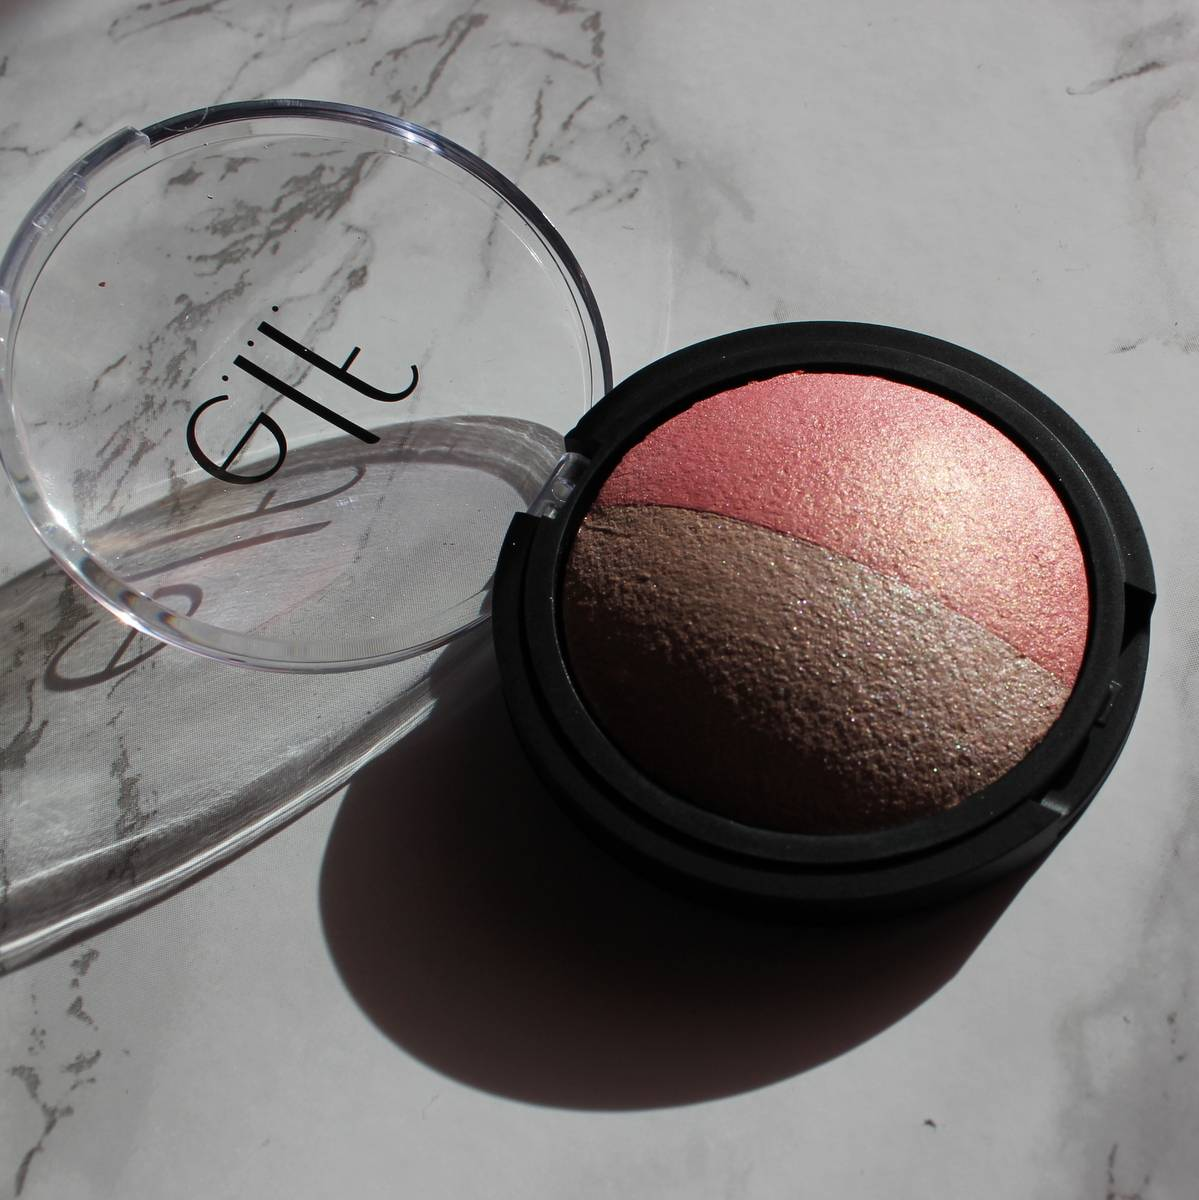 e.l.f. baked blush and highlighter duo